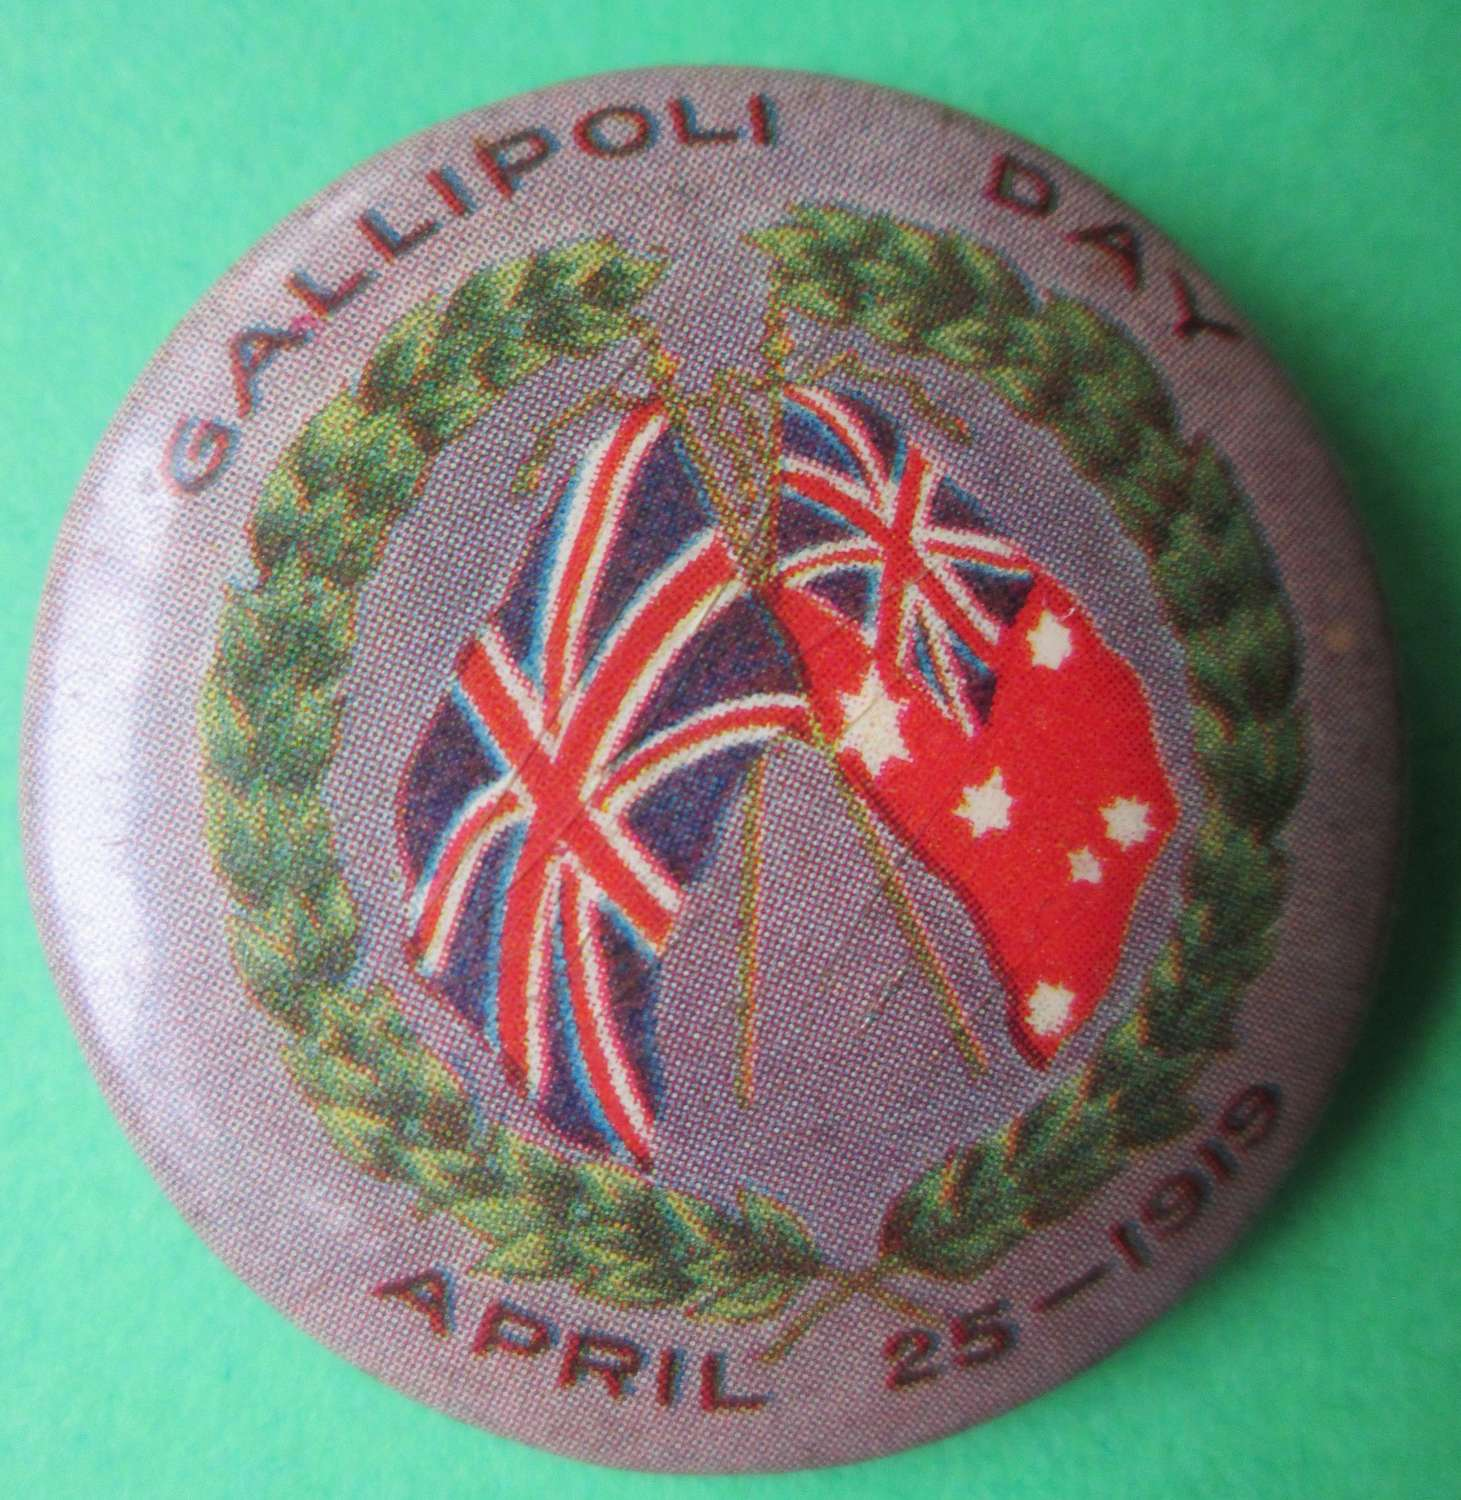 A GOOD WWI AUSTRALIAN GALLIPOLI DAY BADGE APRIL 23 1915